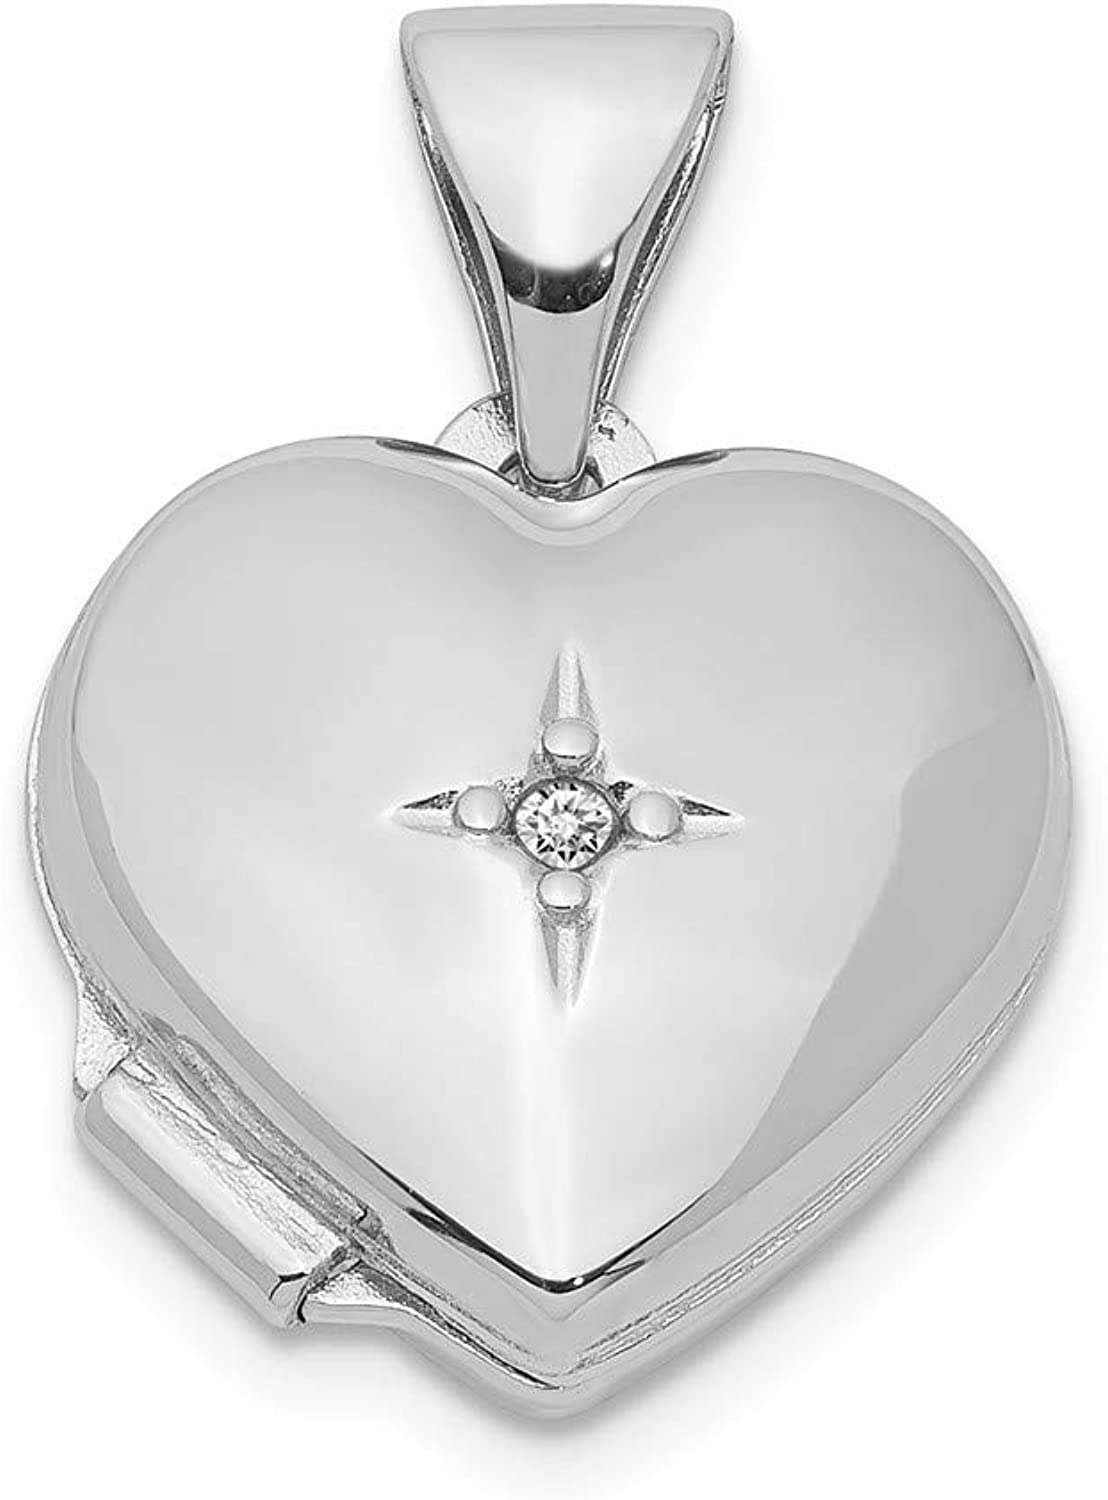 FB Jewels Solid Sterling Silver RhodiumPlated 12mm Heart With Diamond Locket